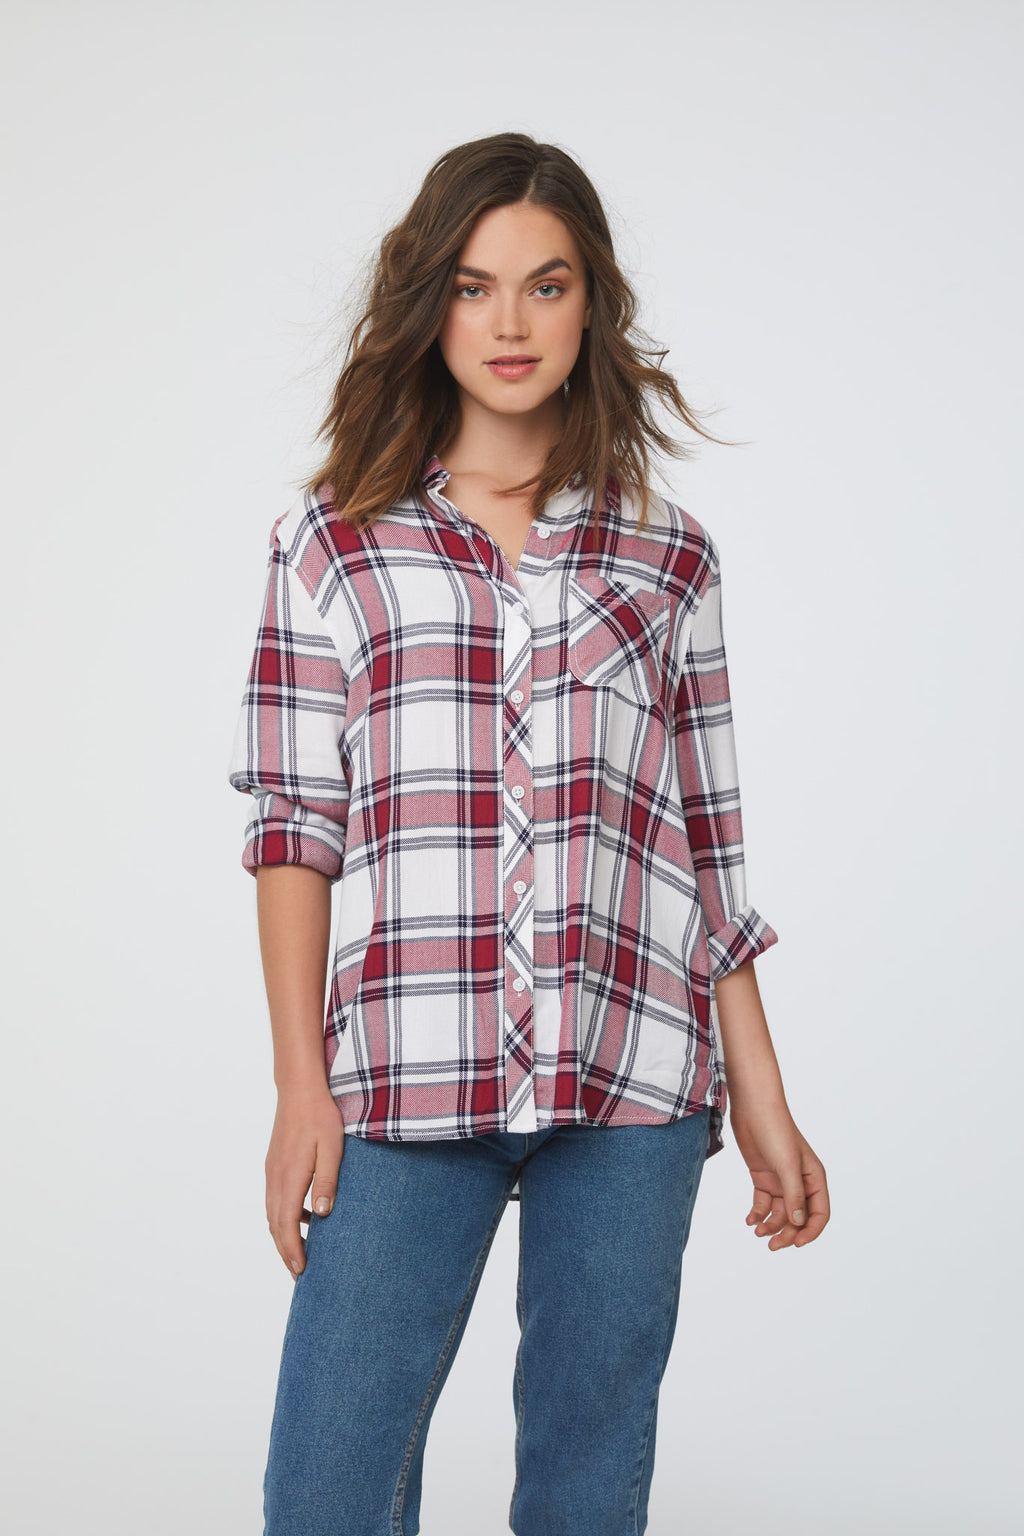 woman wearing a long sleeve, white and red plaid, button-down shirt with single chest pocket